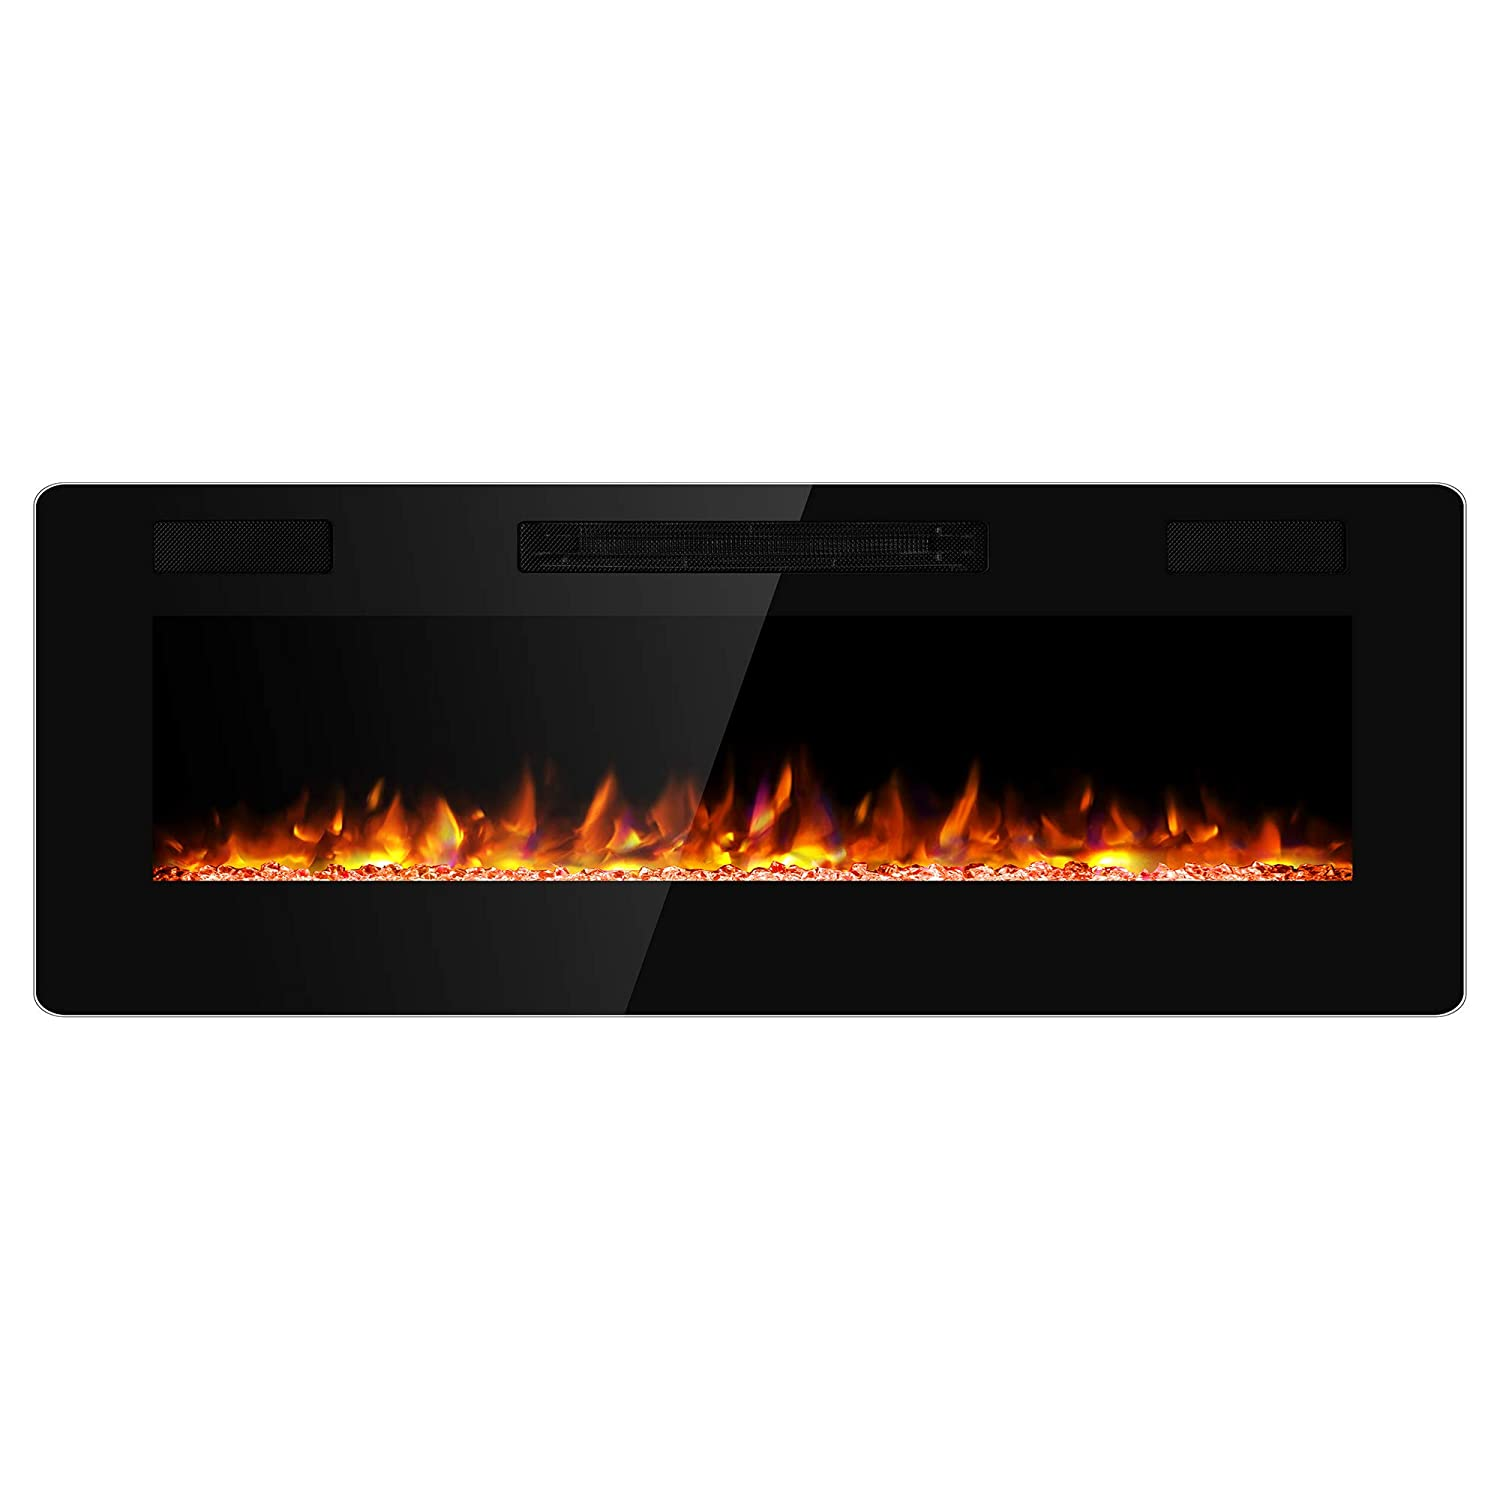 JAMFLY Electric Fireplace Wall Mounted 50 Inch Insert 3.86 Inch Thin Electric Fireplace Recessed Fit for 2 x 6 and 2 x 4 Stud Adjustable 12 Flame LED Colors Remote Control with Touch Screen Black